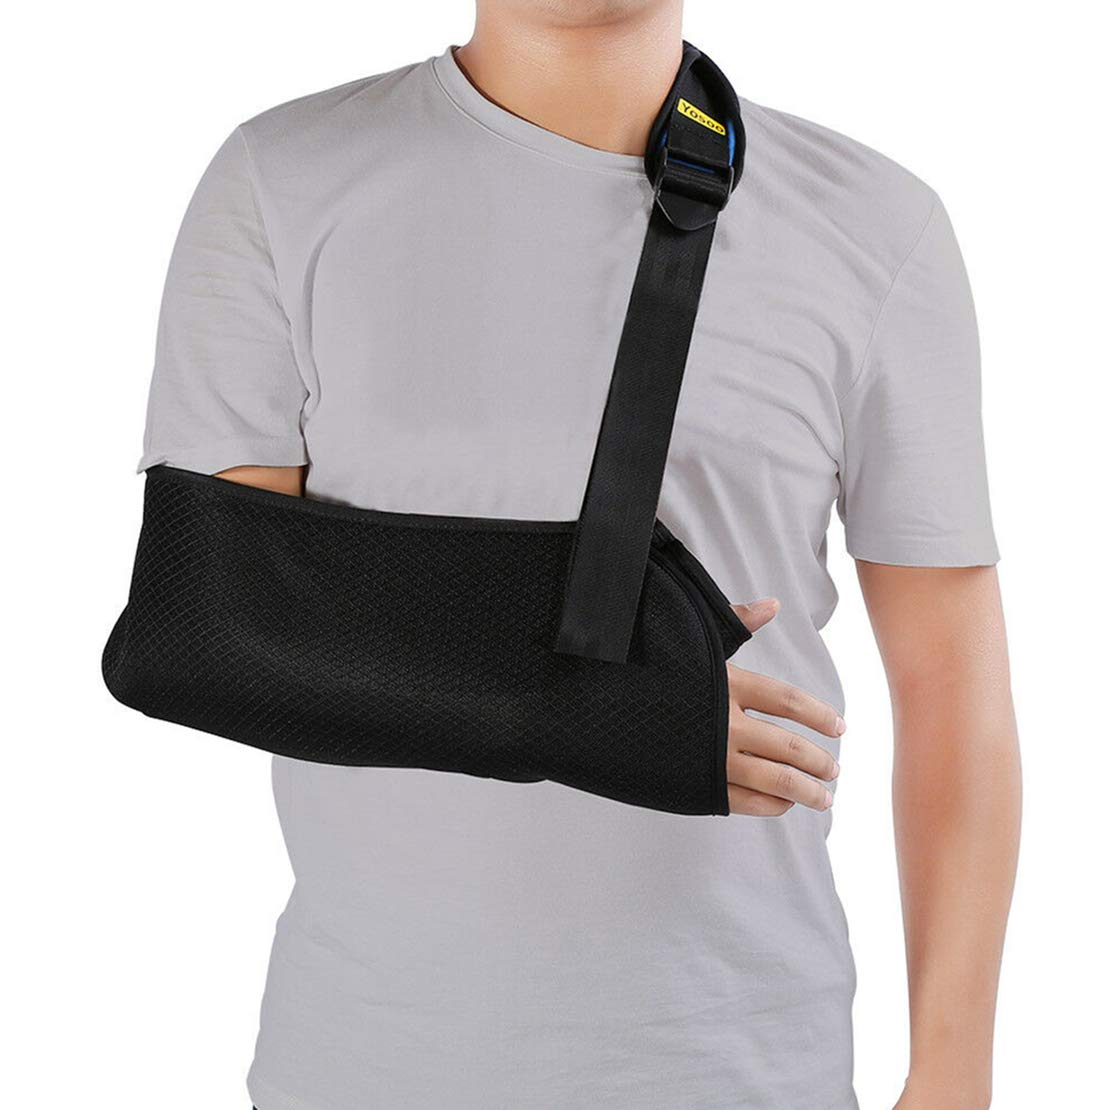 Have the courage to exercise Arm Sling Shoulder Immobilizer Padded Support Brace Universal Medical New